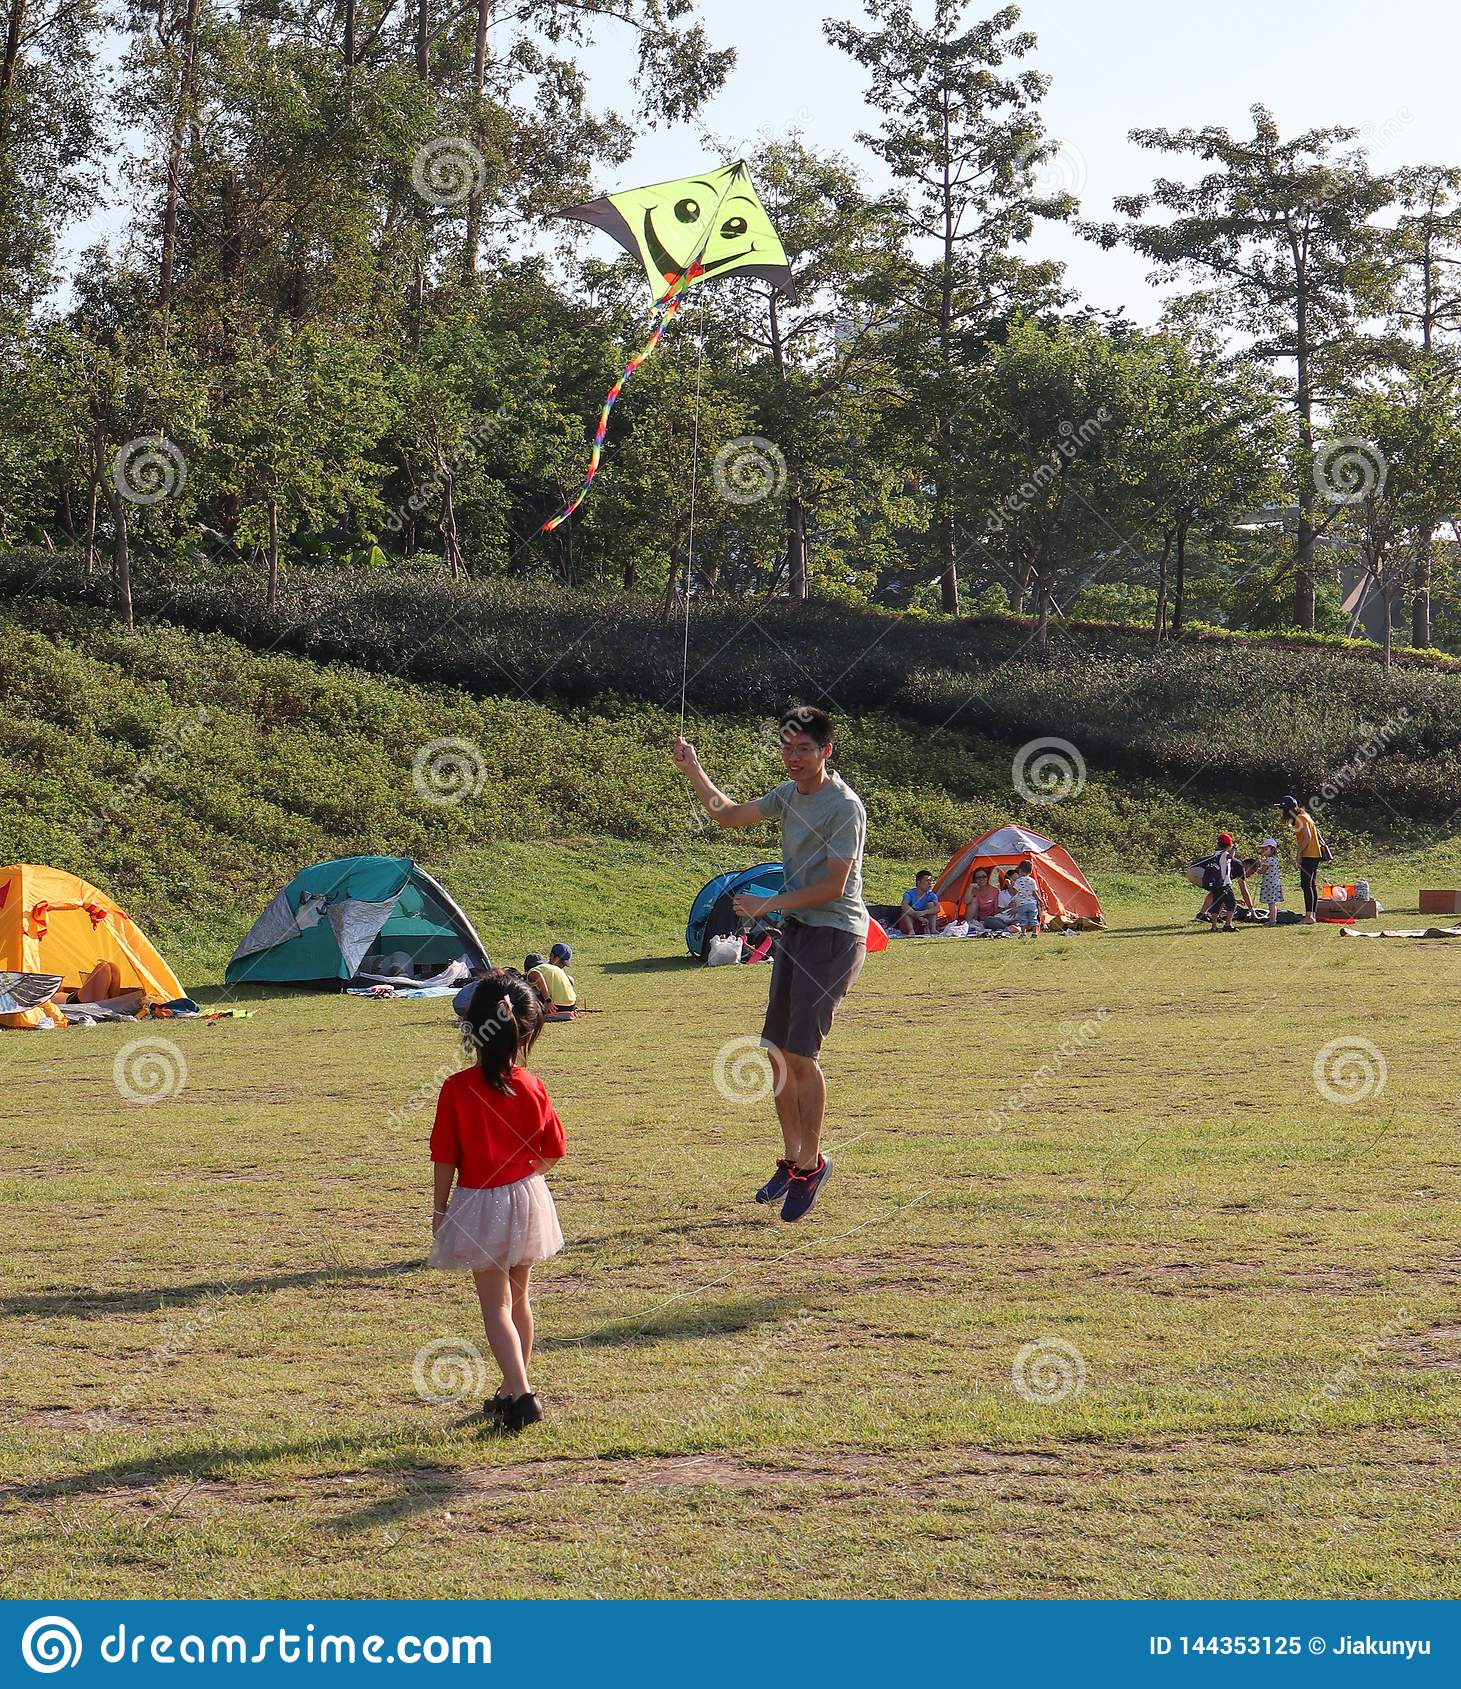 Father and daughter, People camped on the grass in the park, summer in guangzhou, China